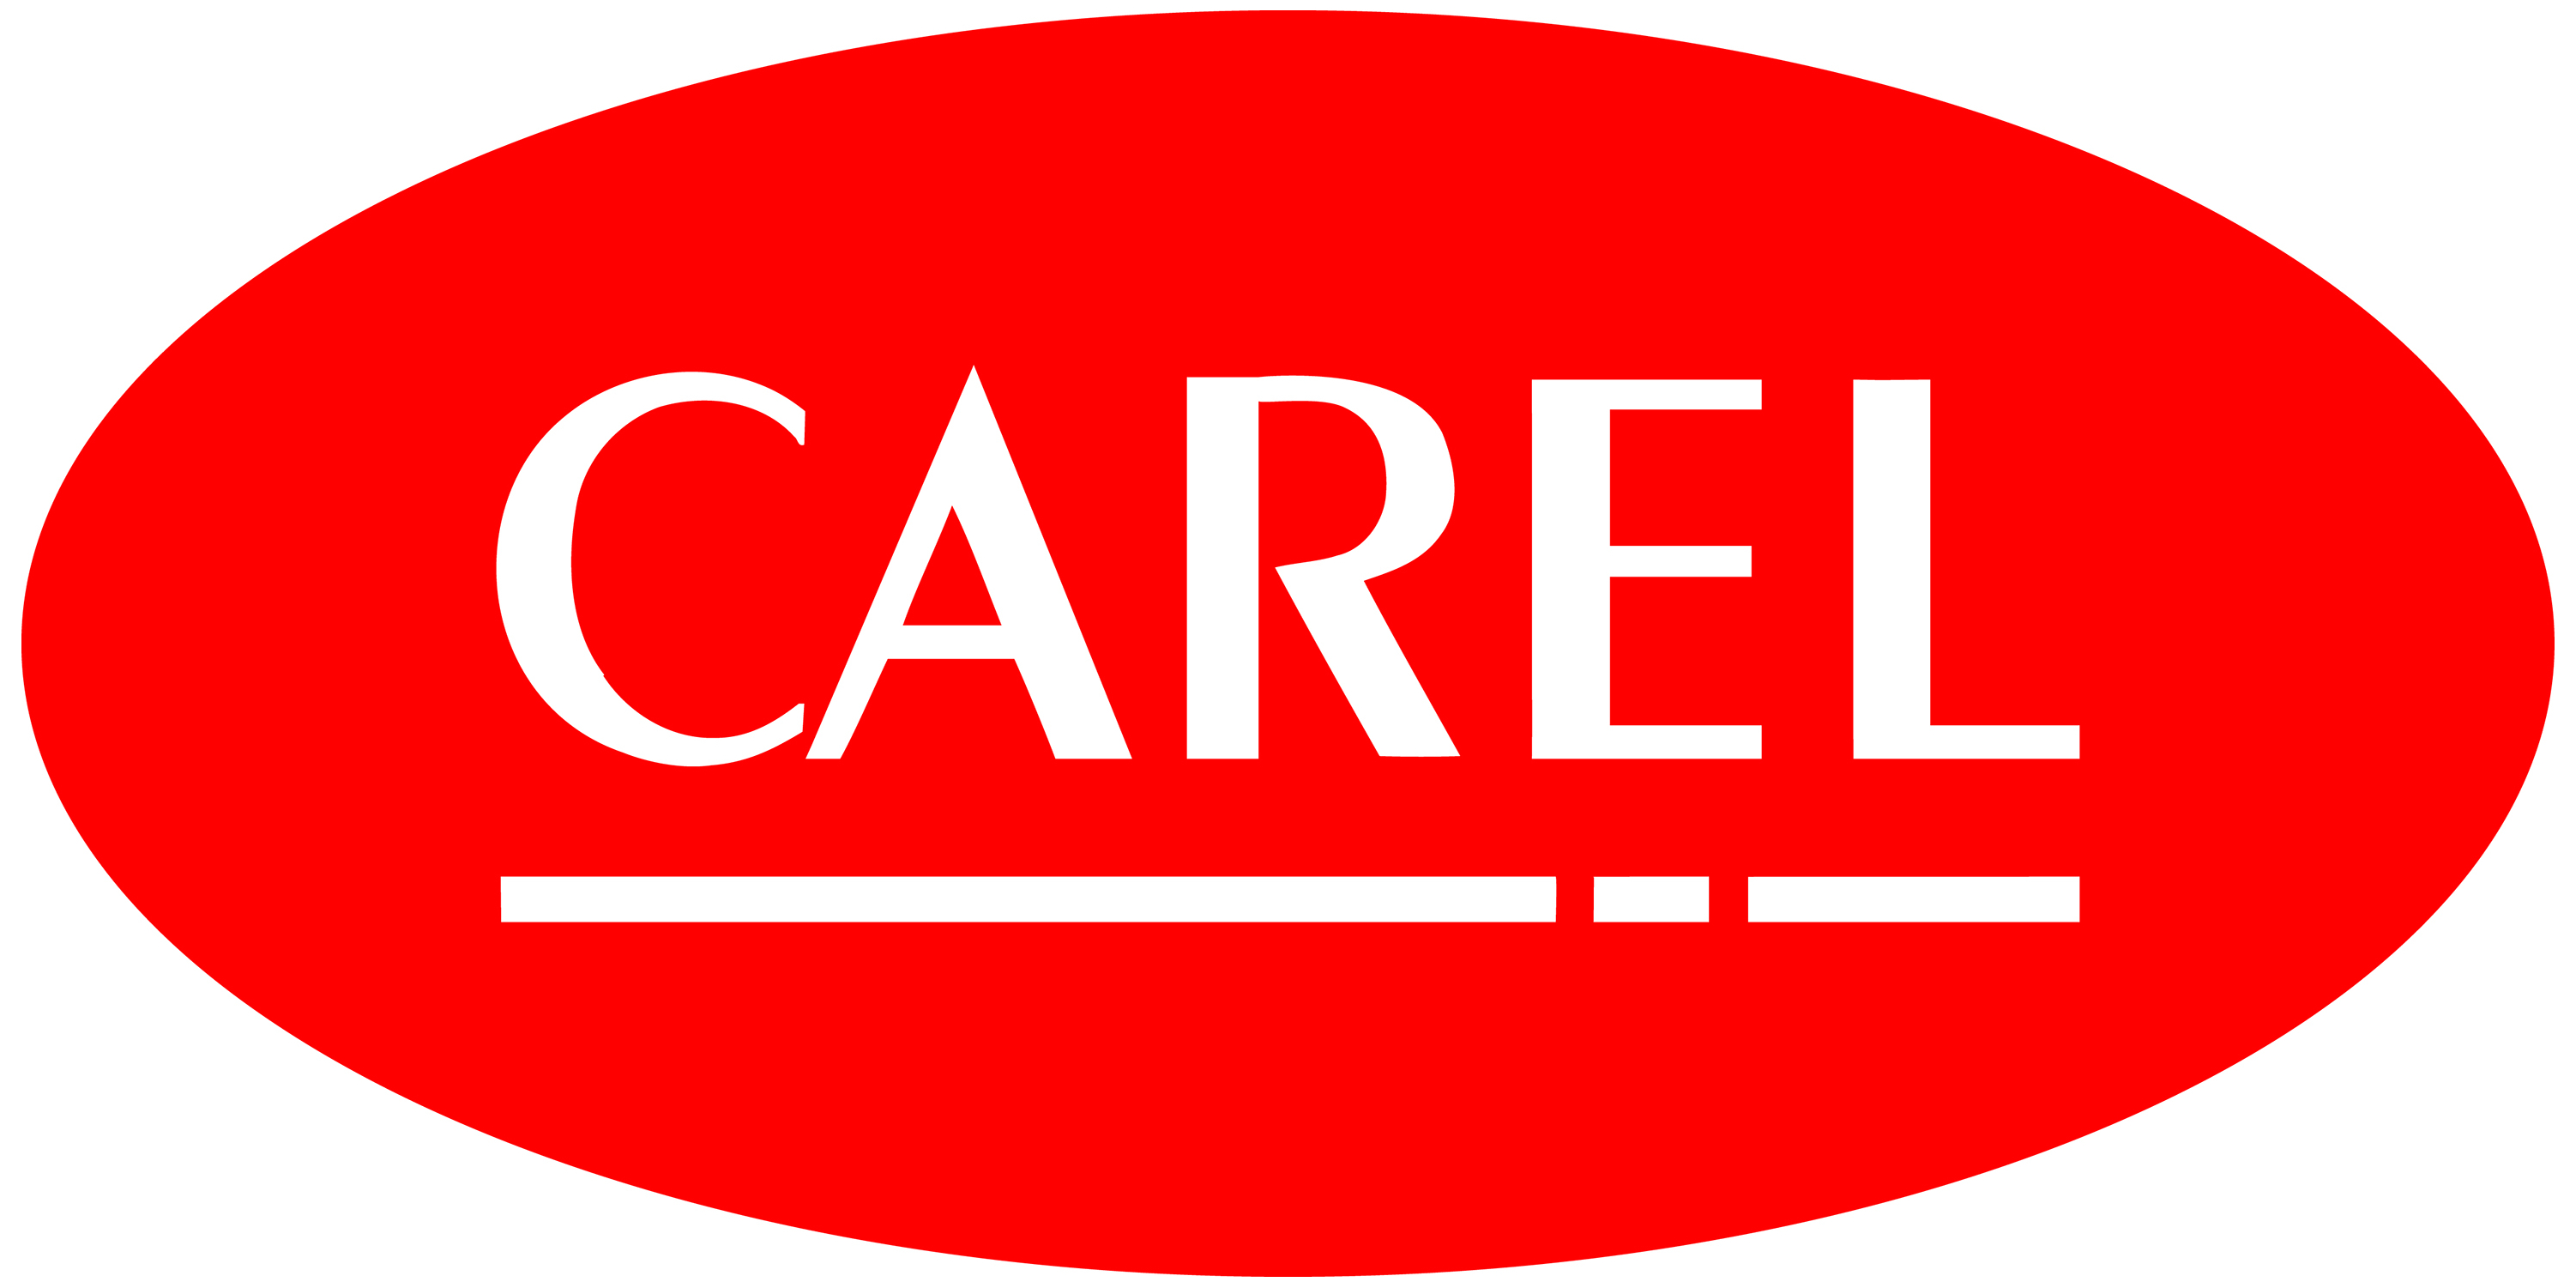 CAREL worldwide branches